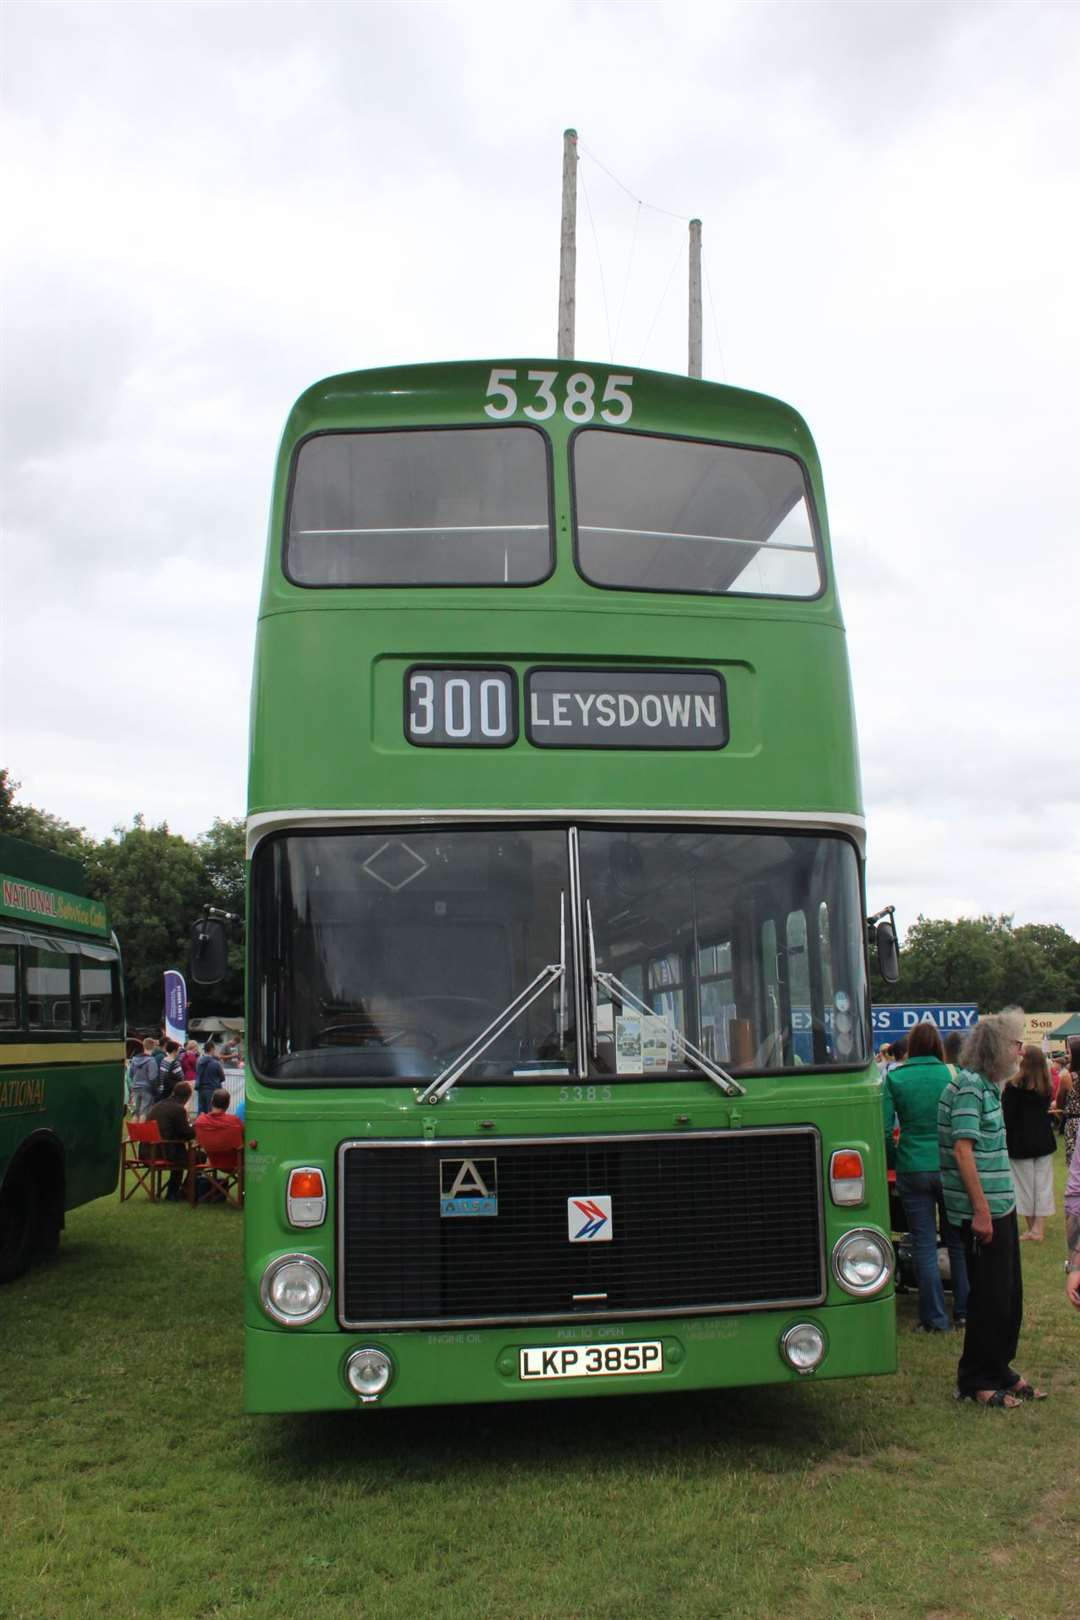 Hold very tight: this original Maidstsone & District Volvo Ailsa bus from 1975 was used iin Hastings and the Medway Towns until it was withdrawn from service in 1983i and sent to Scotland. It is now back in its 1981 colours after a respay in 2012 and ready to take passengers to Leysdown on the Isle of Sheppey. (13545713)